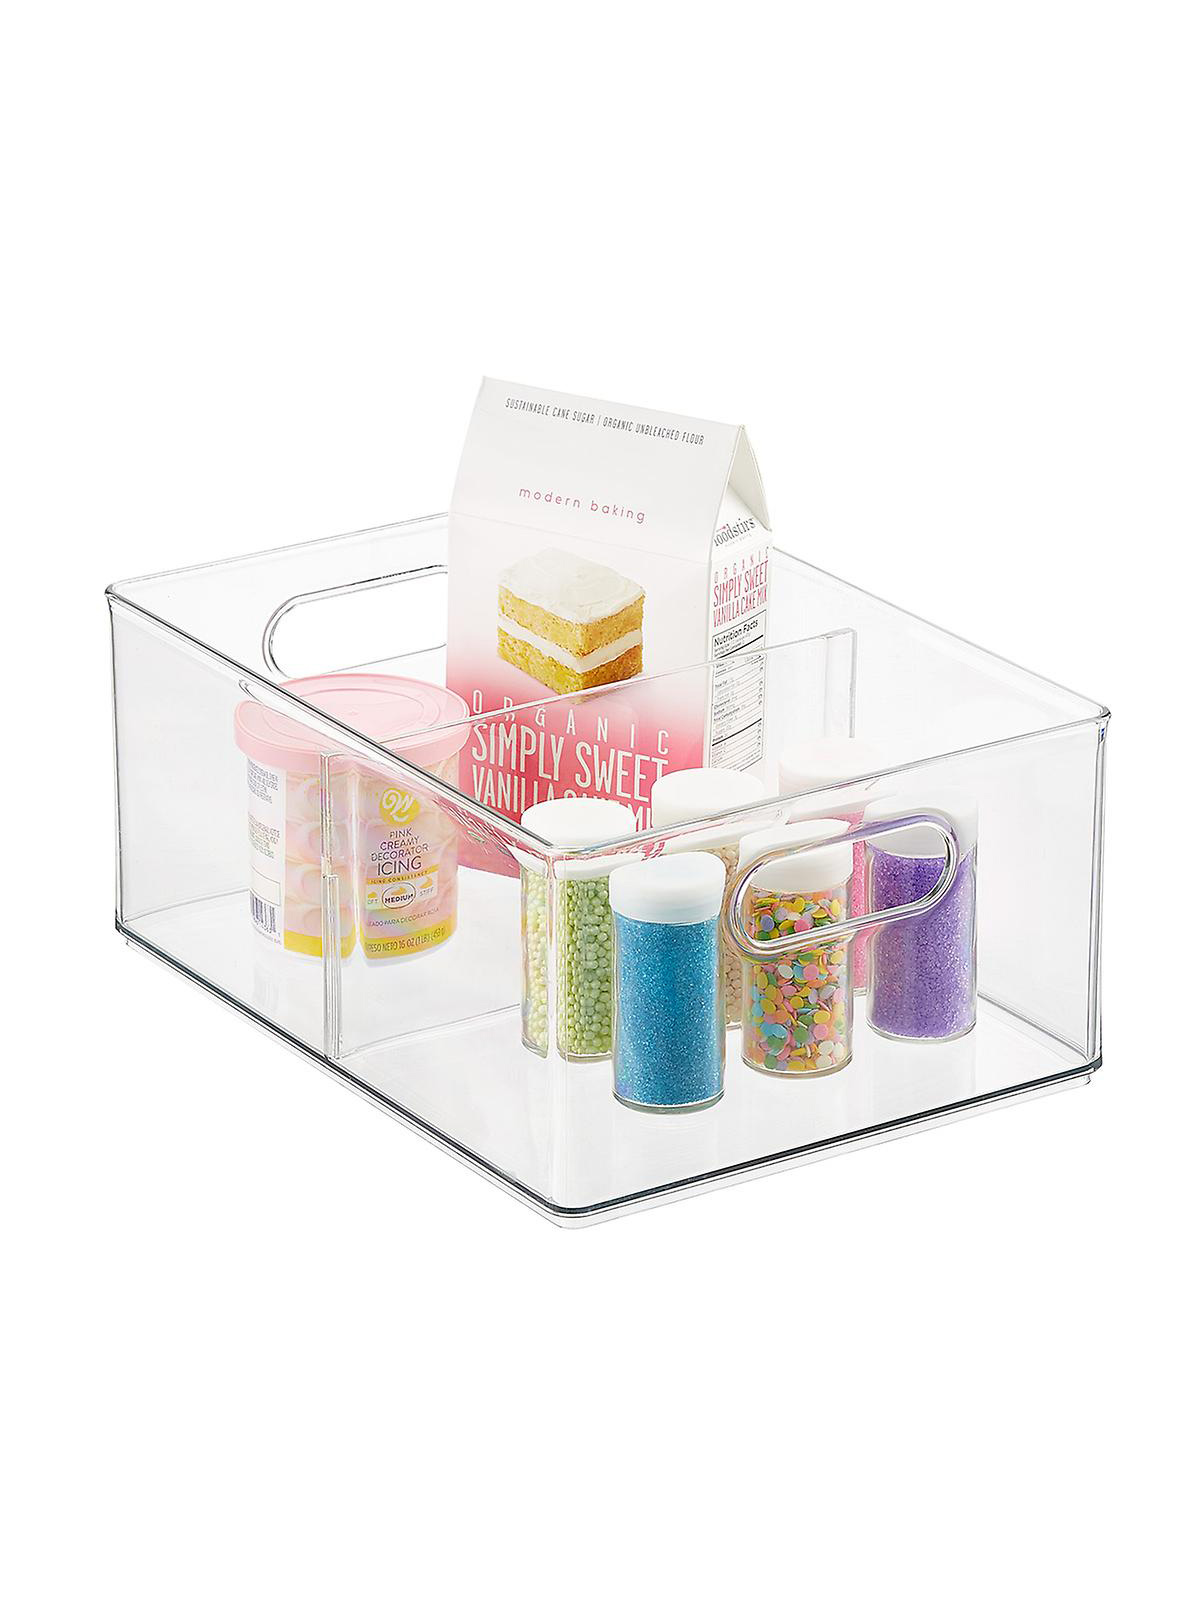 The Home Edit Container Store, clear storage bin with dividers